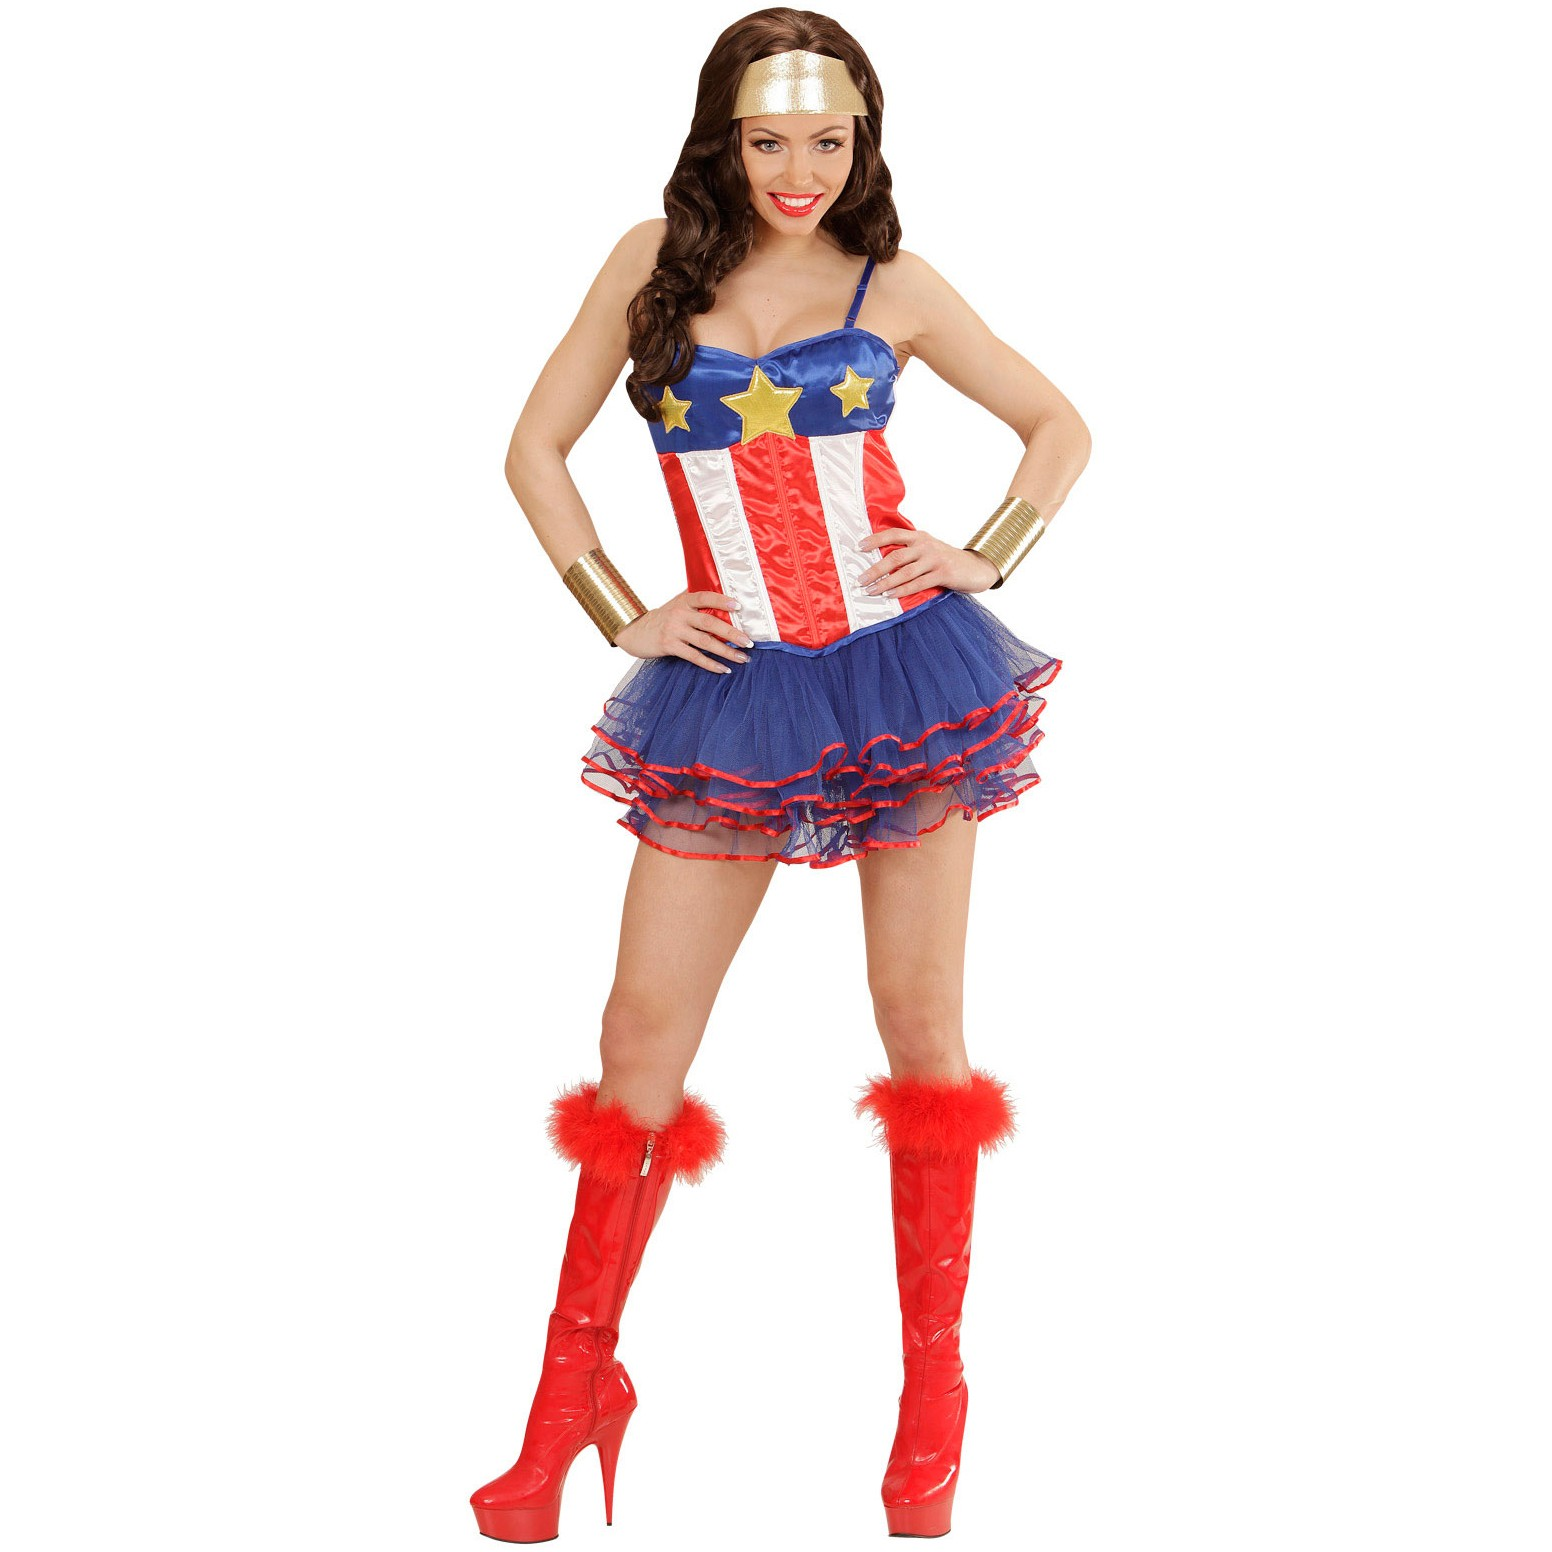 north hero single girls Official site for american girl dolls, clothes for dolls and girls, doll furniture, books, stores, gifts for girls, and online games for girls.